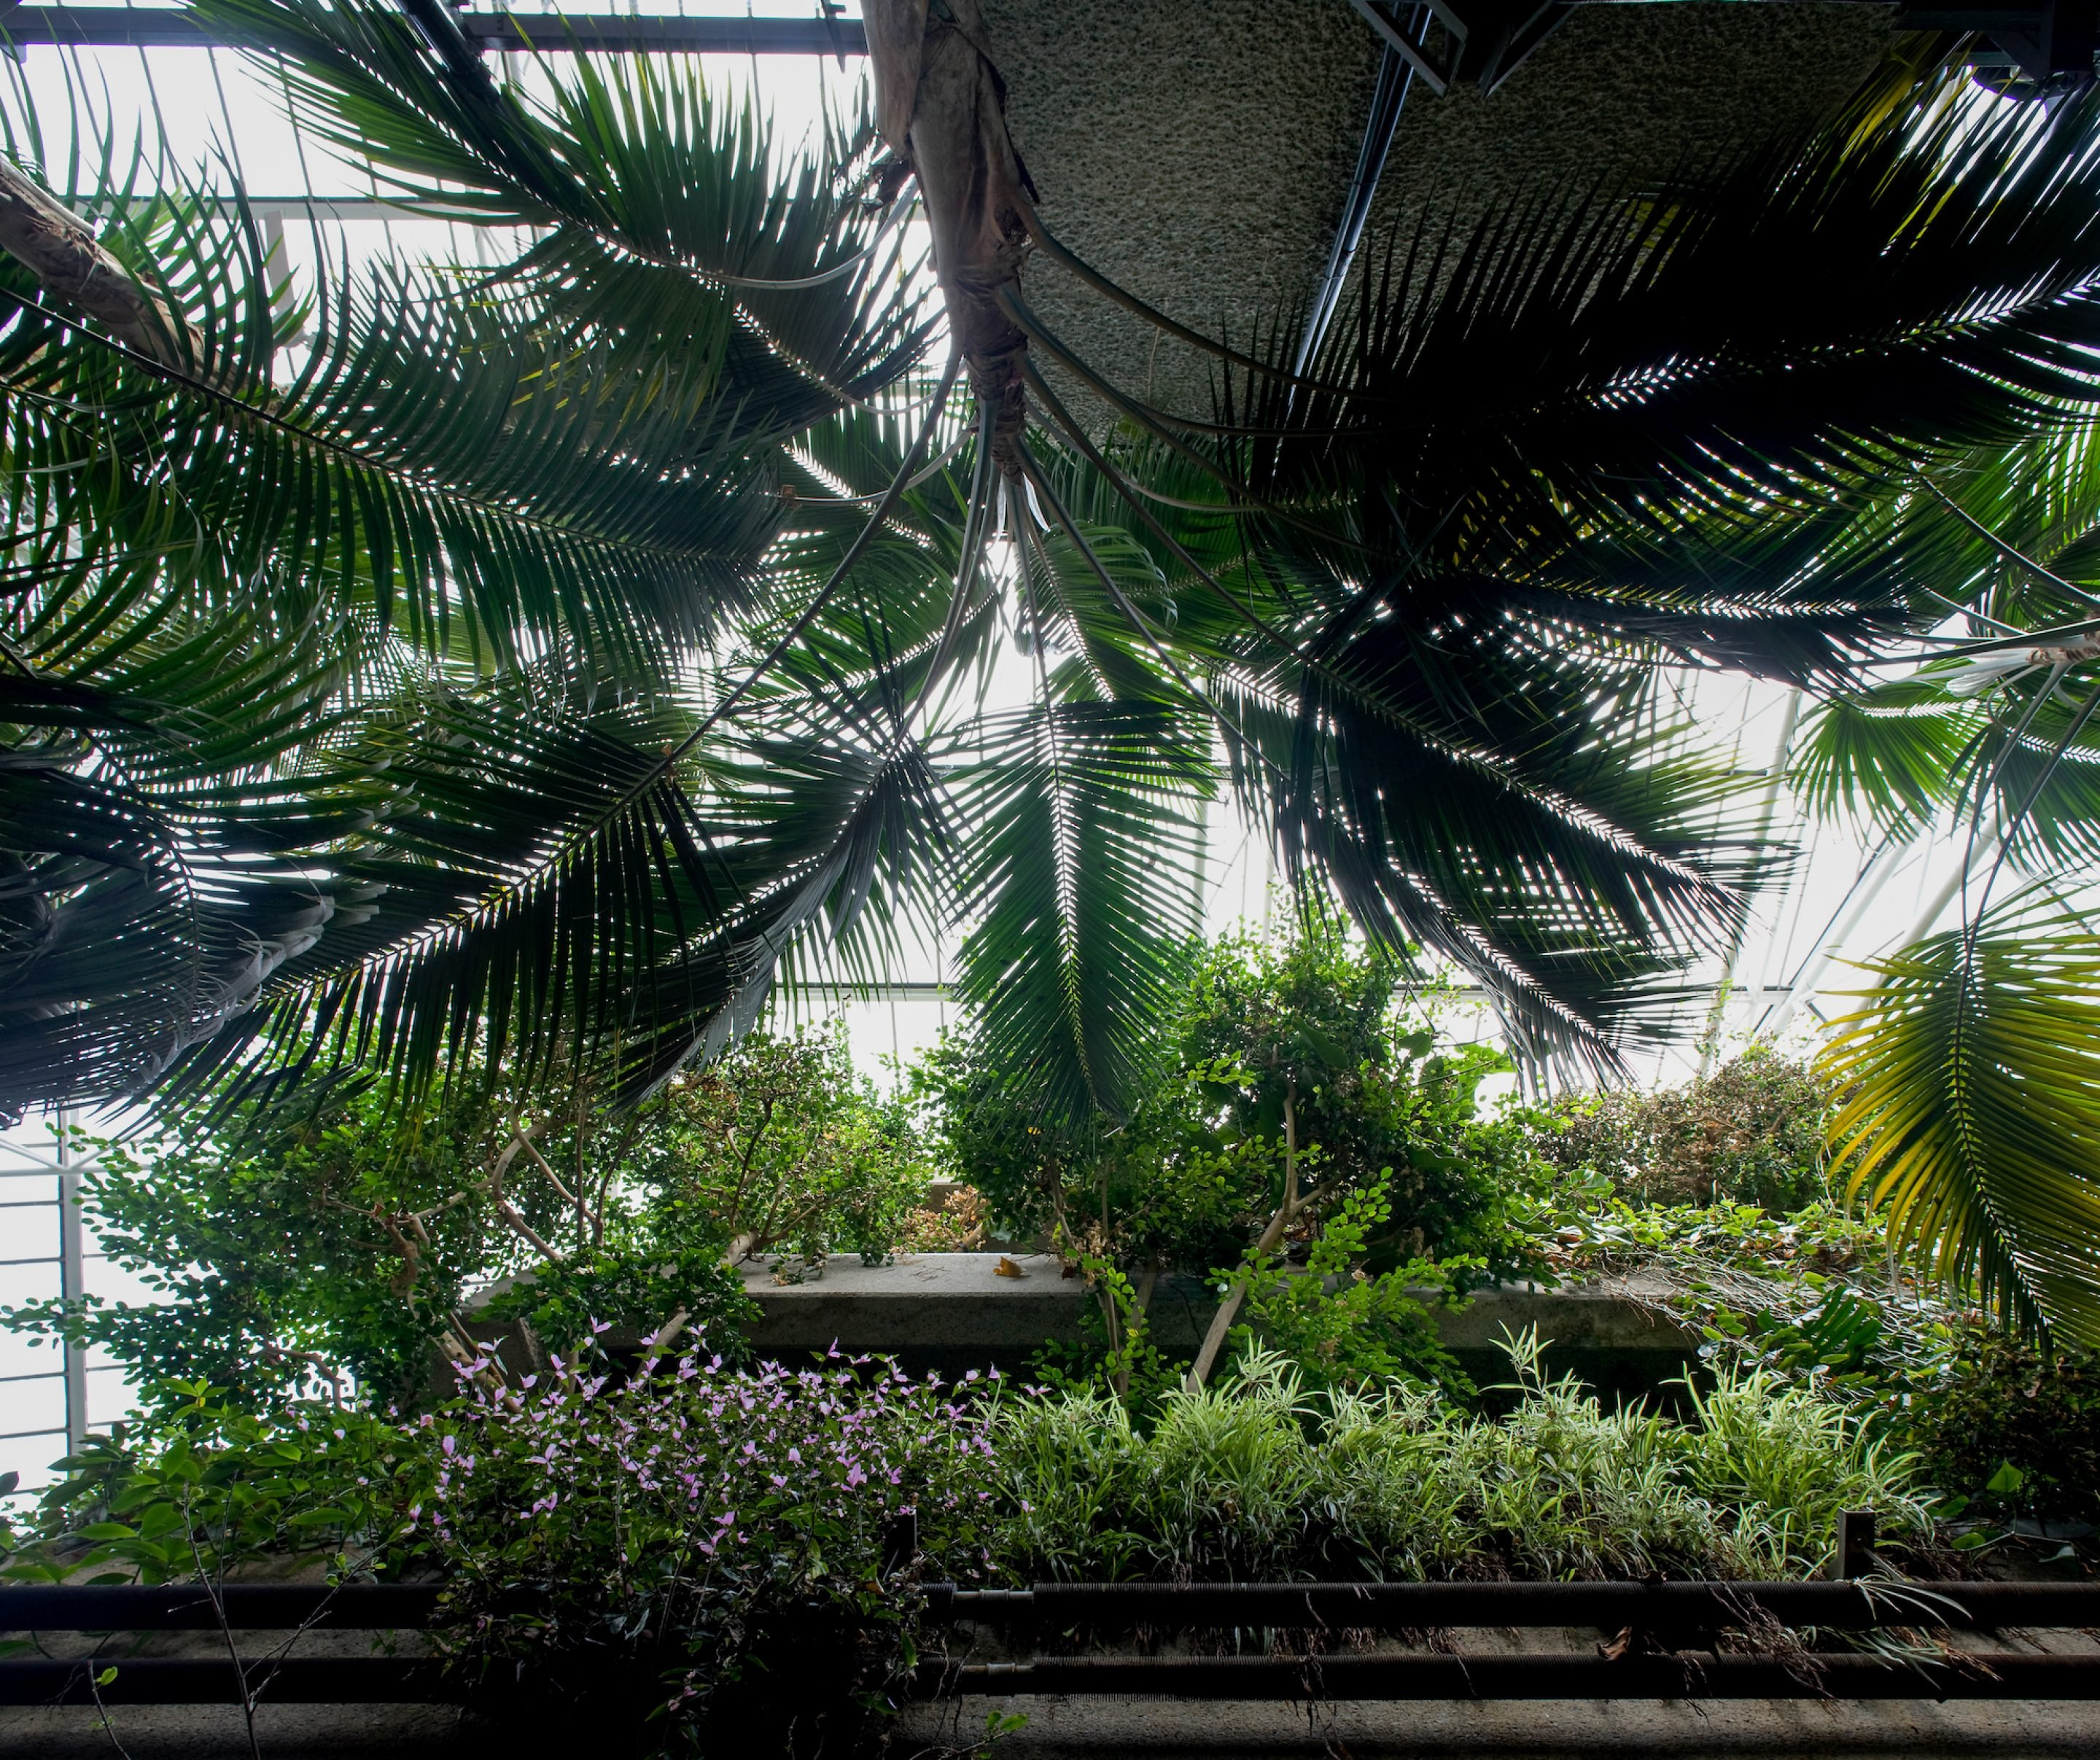 IGNANT-Travel-Luke-Hayes-The-Barbican-Conservatory-08